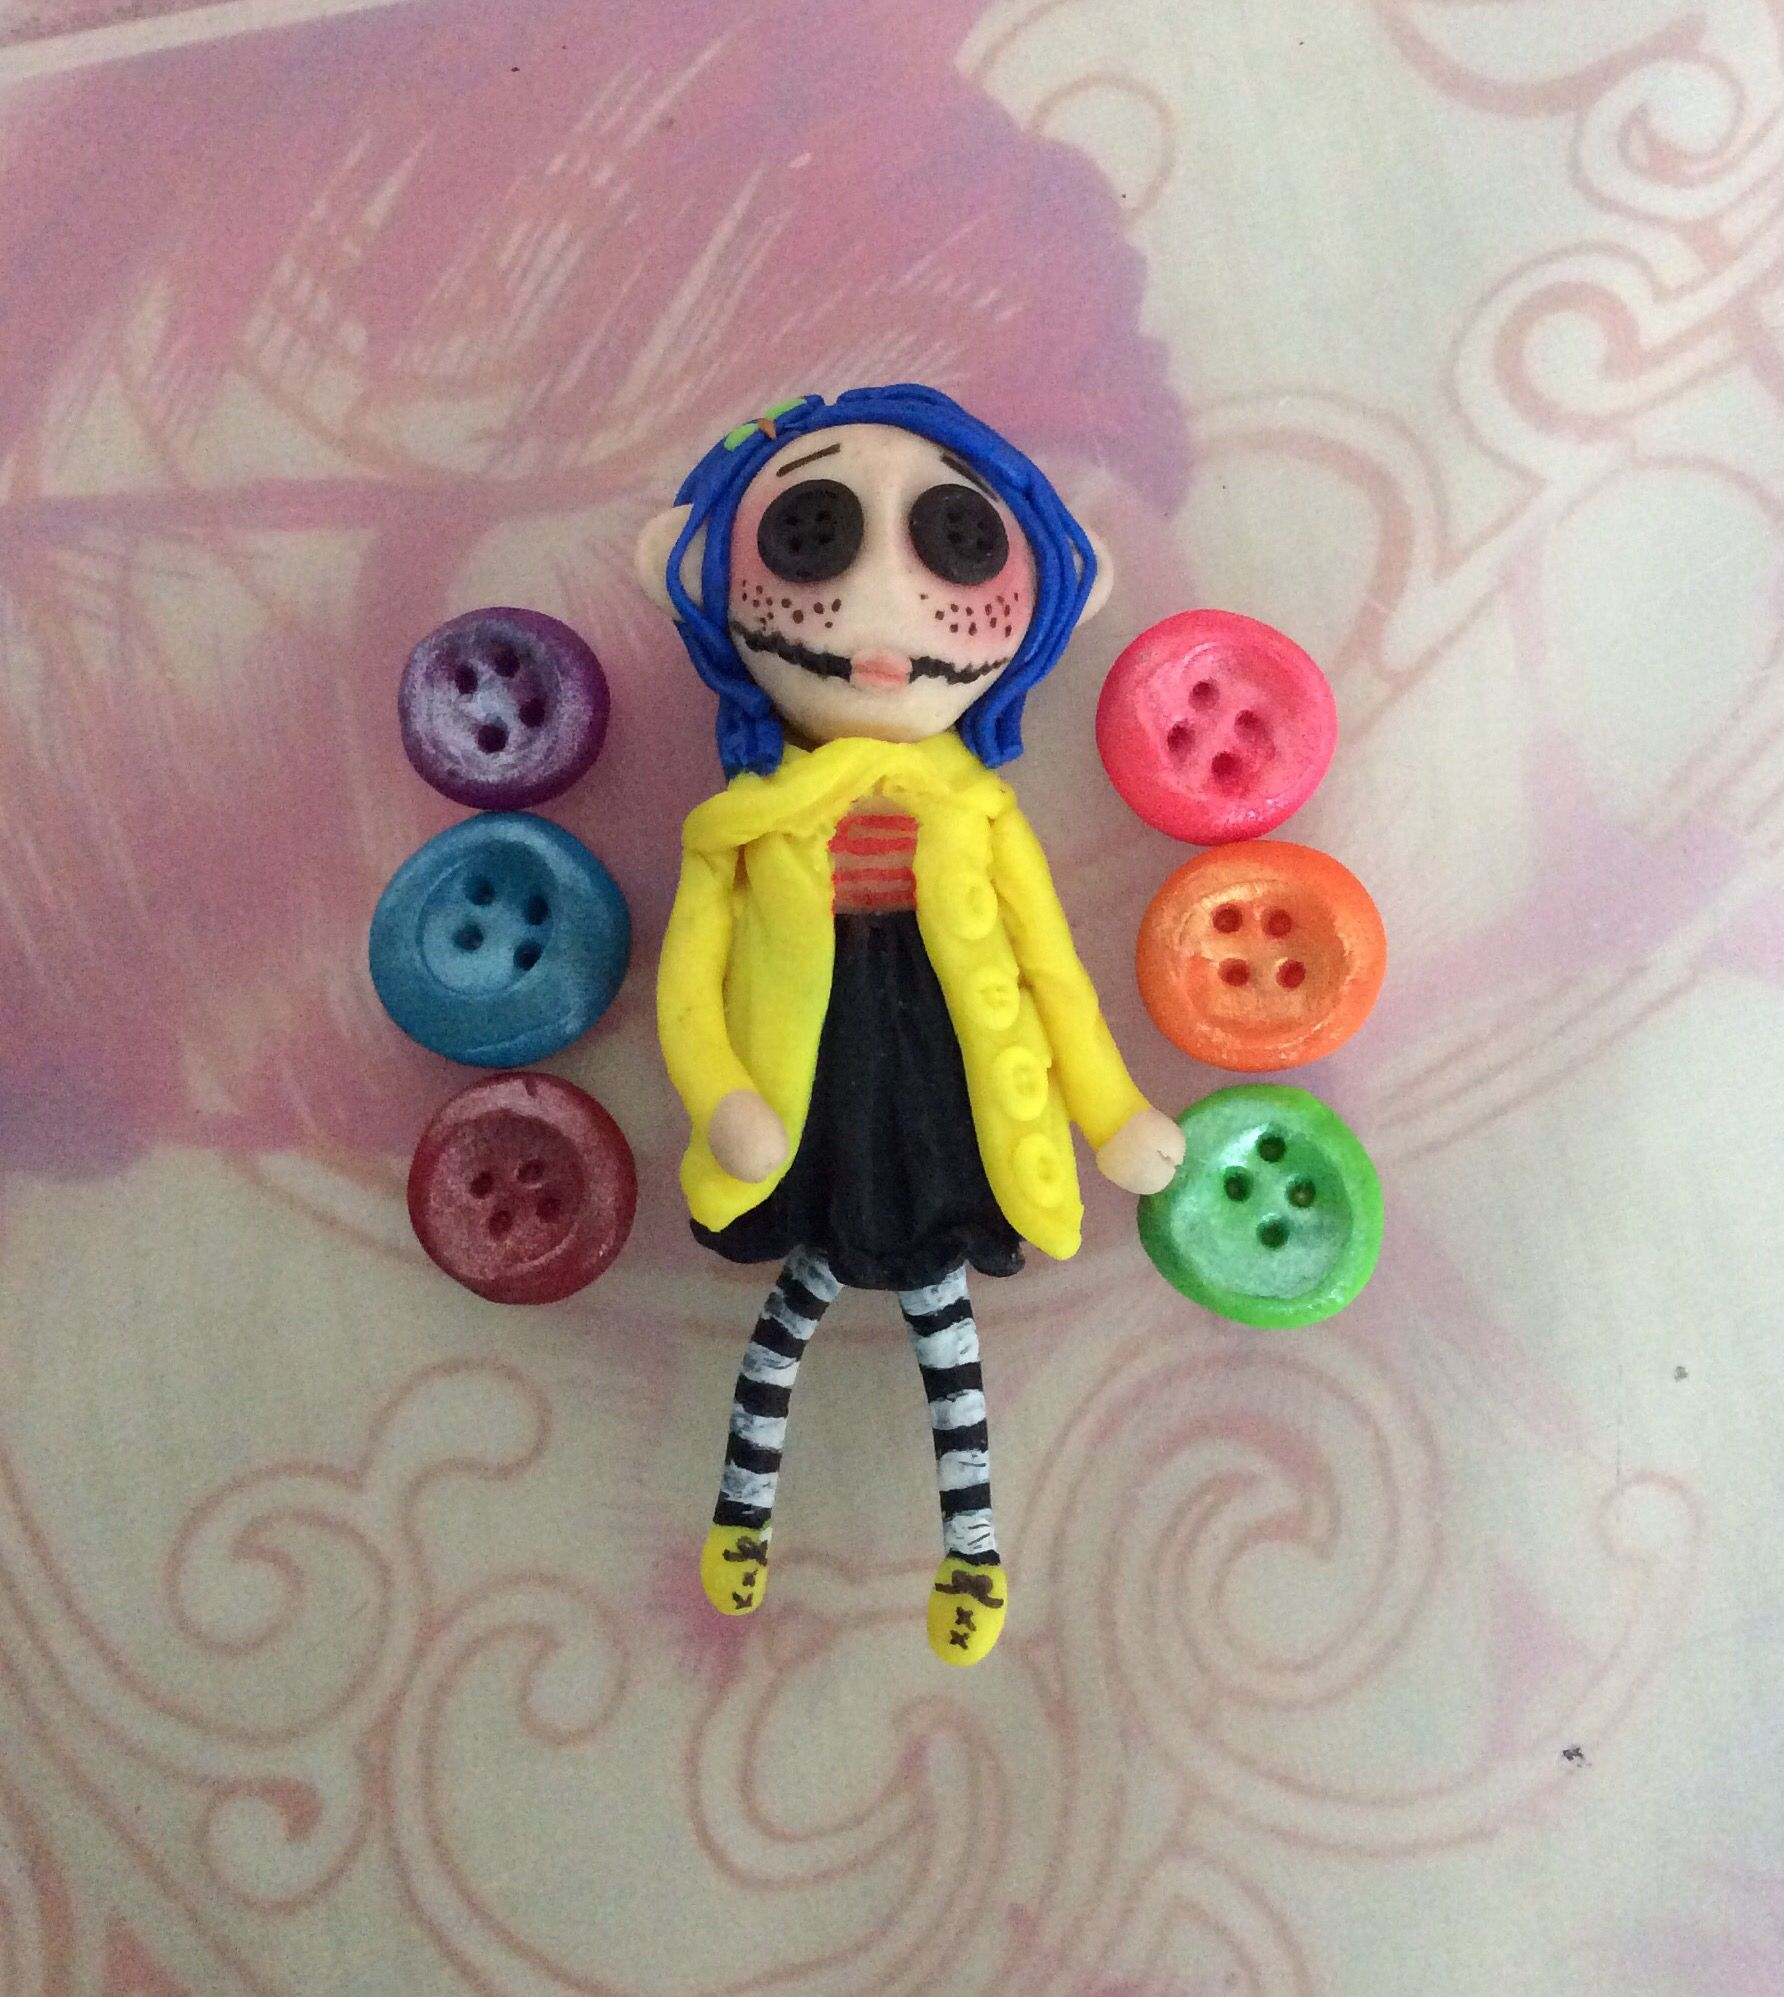 Coraline Polymer Clay Voodoo Doll Polymer Clay Dolls Clay Dolls Voodoo Dolls